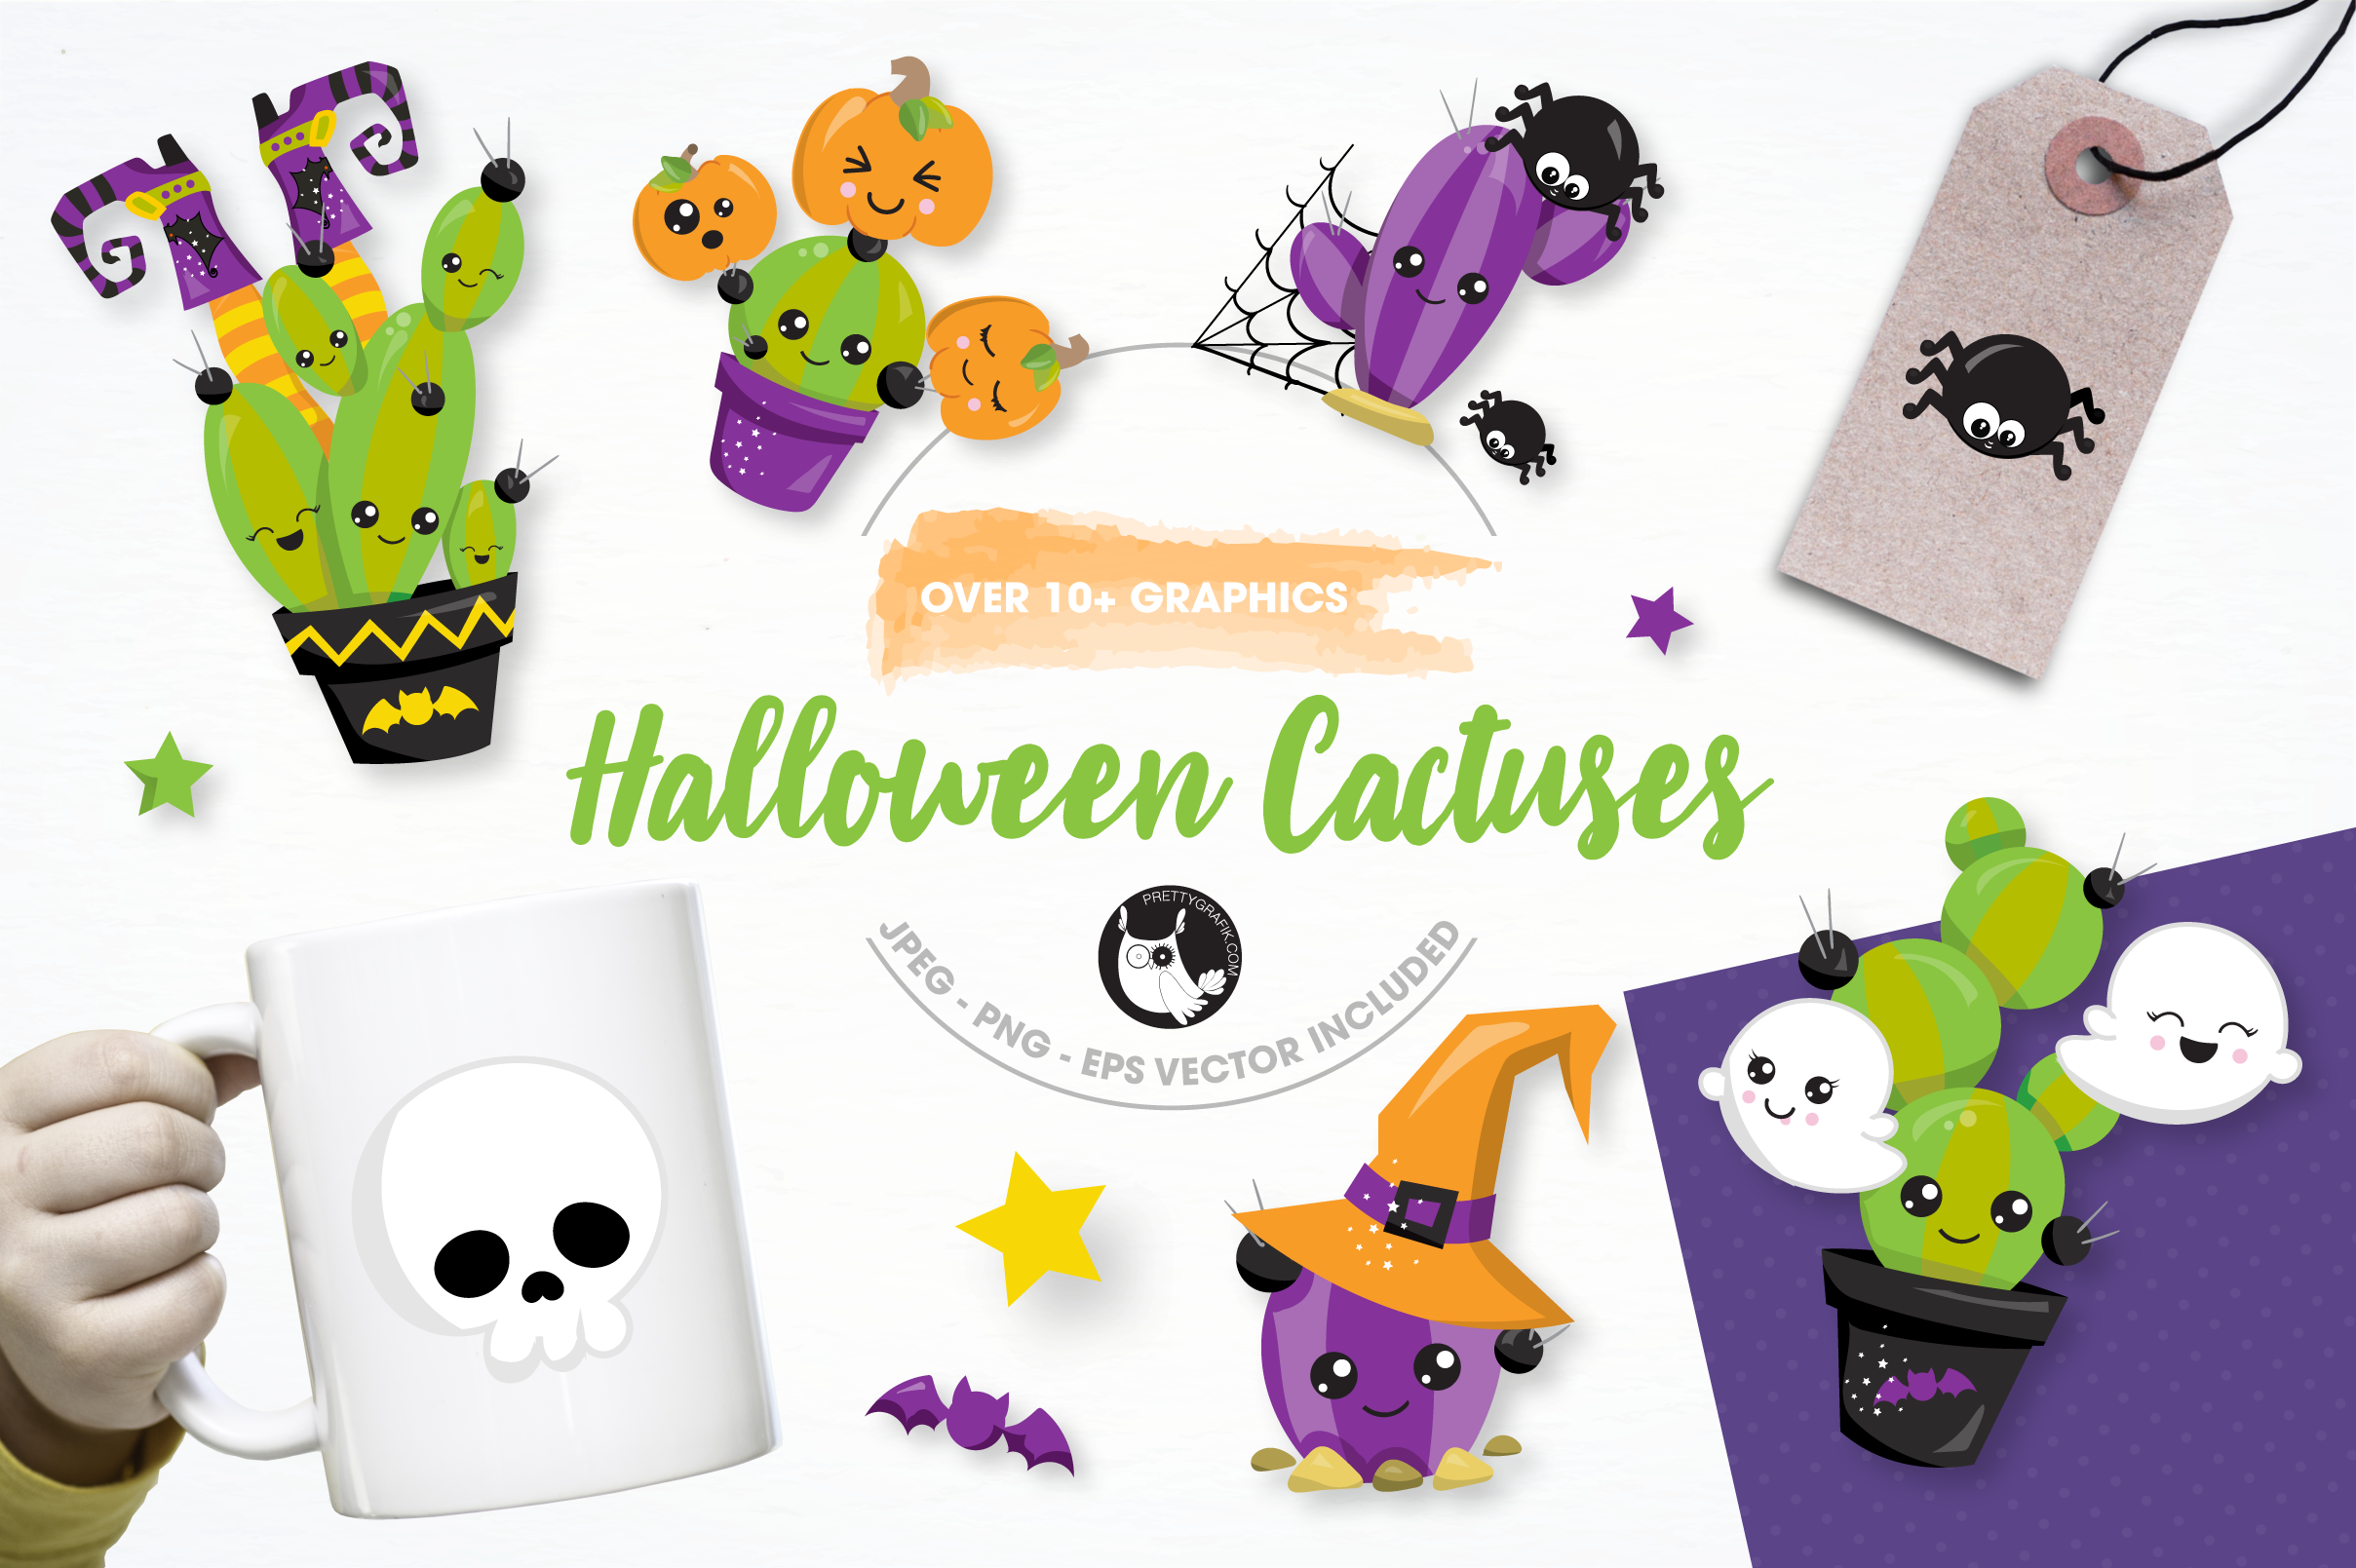 Halloween cactus graphics and illustrations example image 1